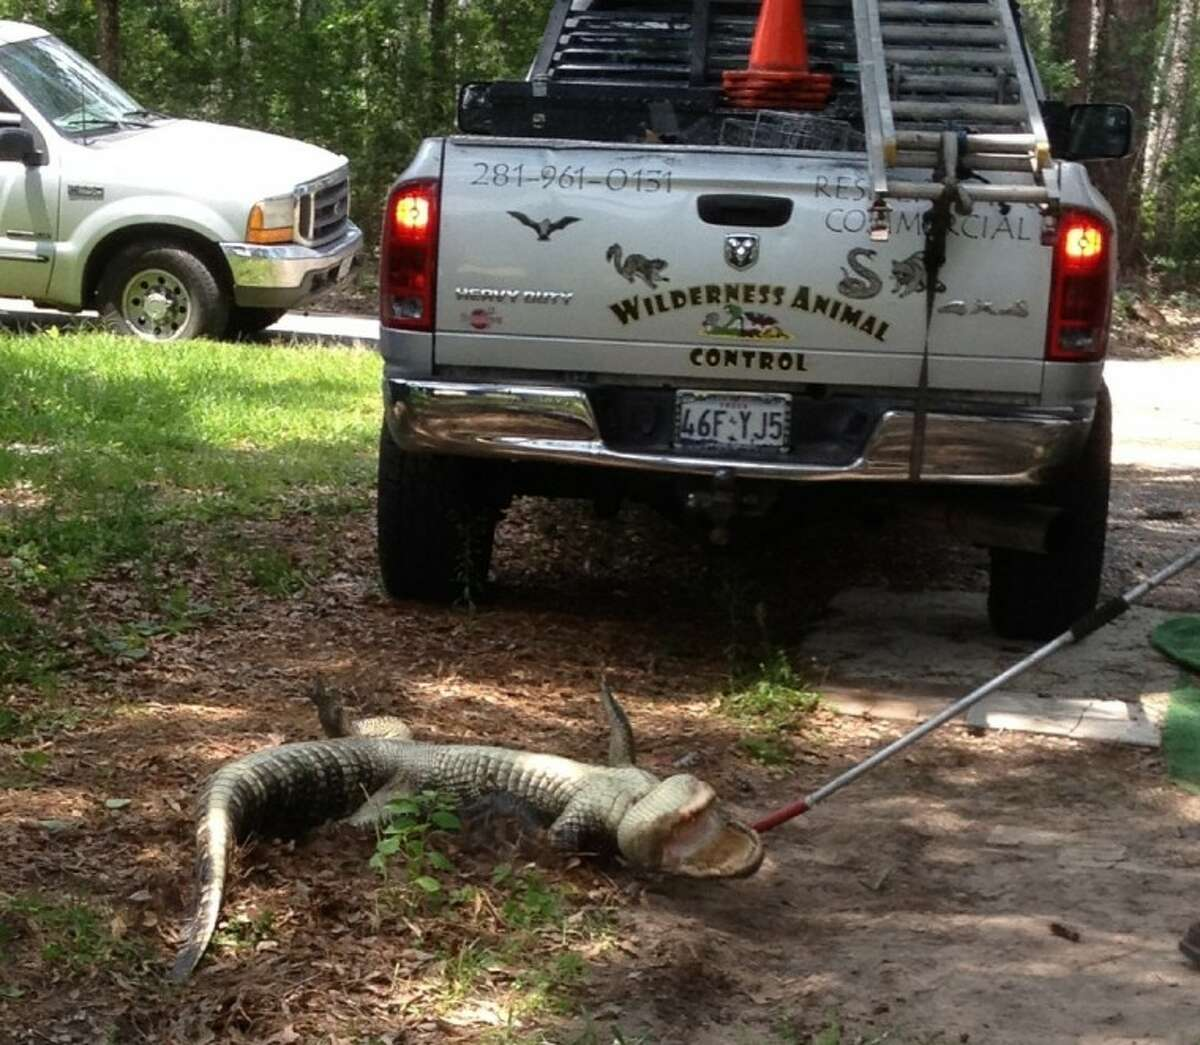 The alligator was captured alive and transported to Chambers County for release.